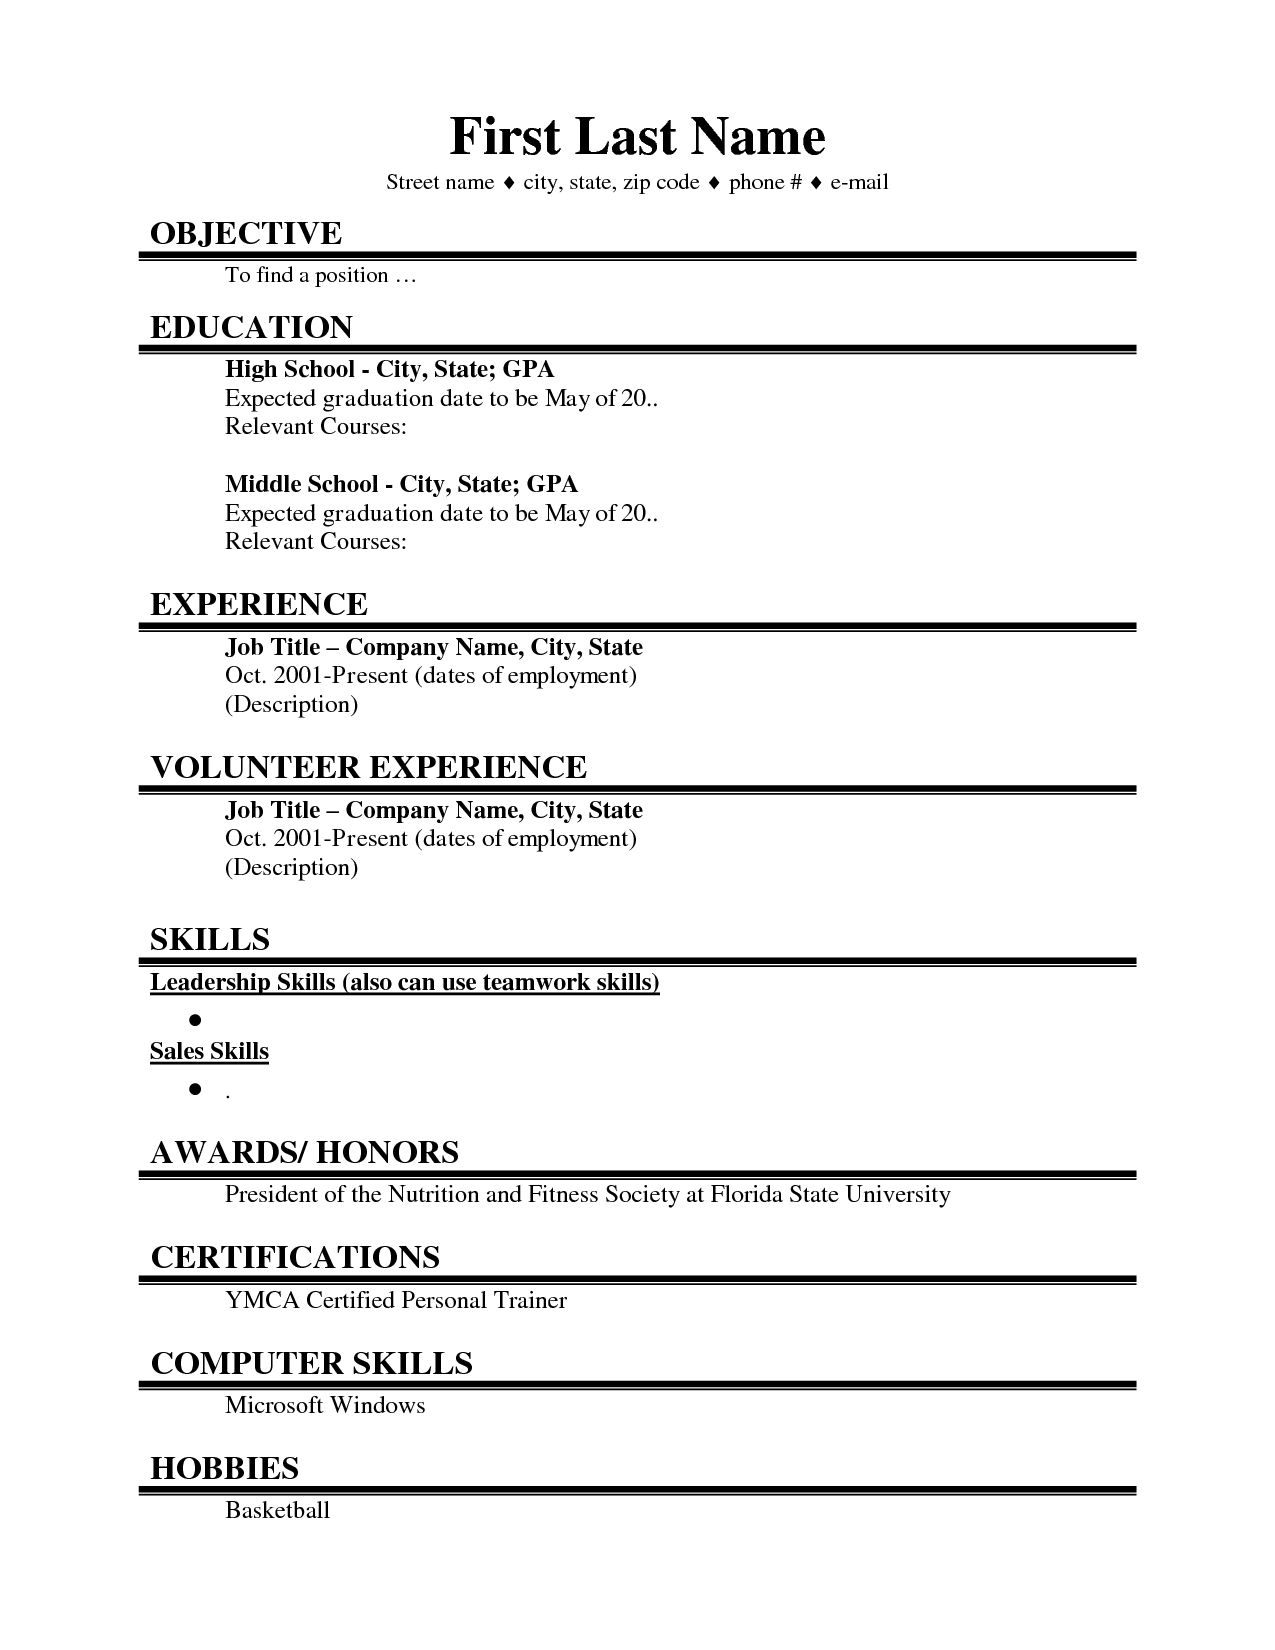 Resumes Examples For College Students Job Resume Examples For College Students Job Resume